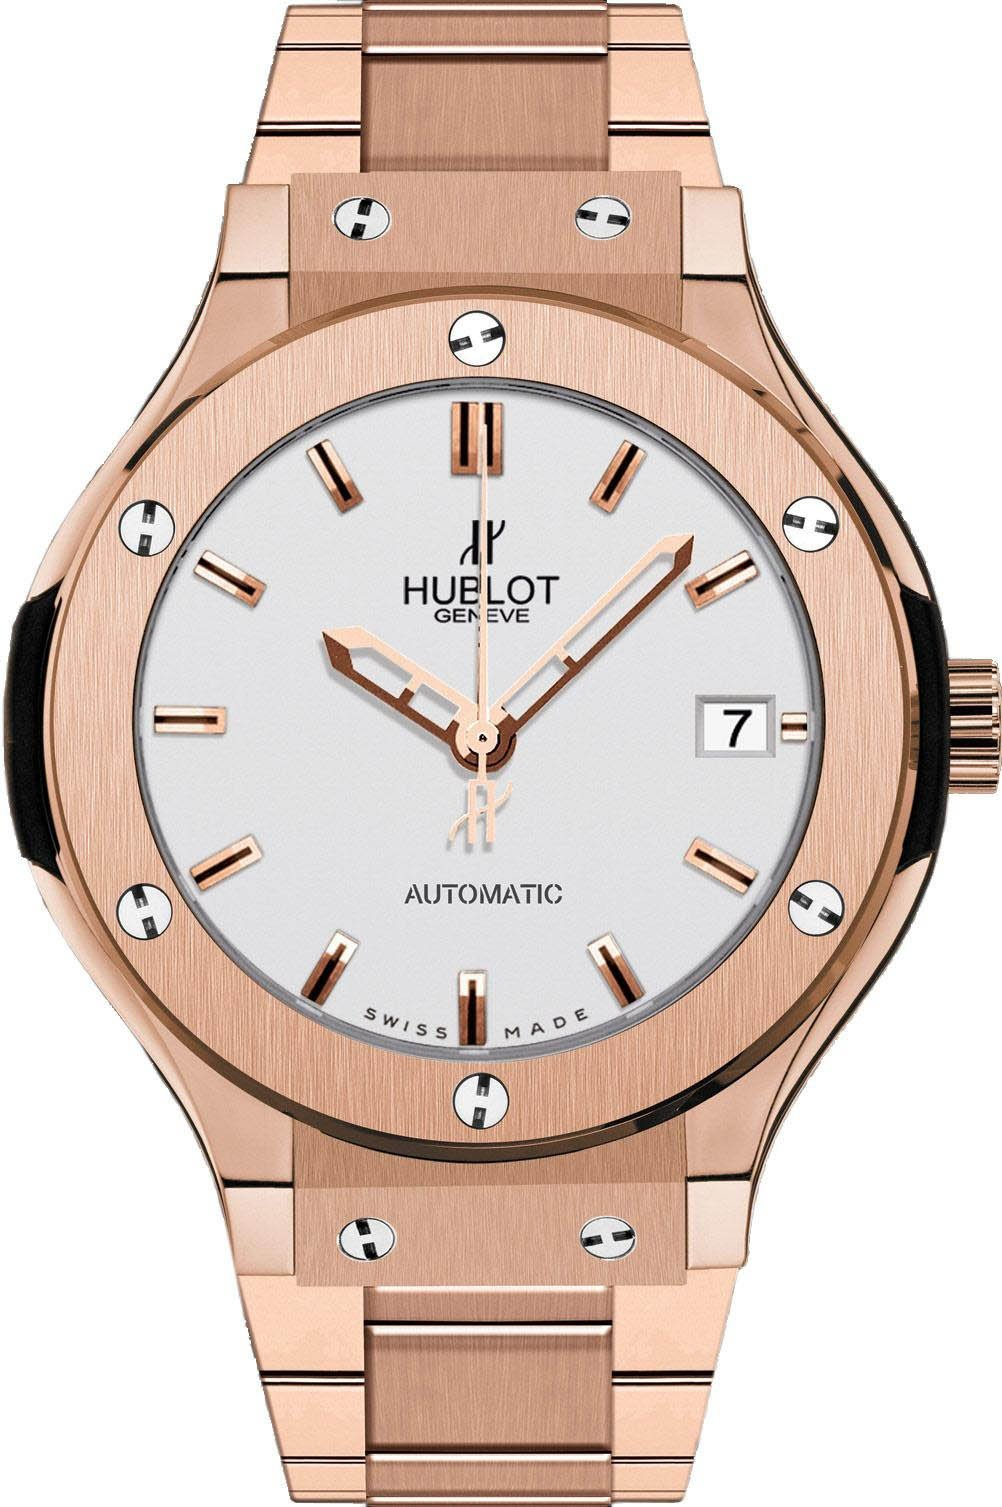 Hublot Classic Fusion 38mm in Rose Gold